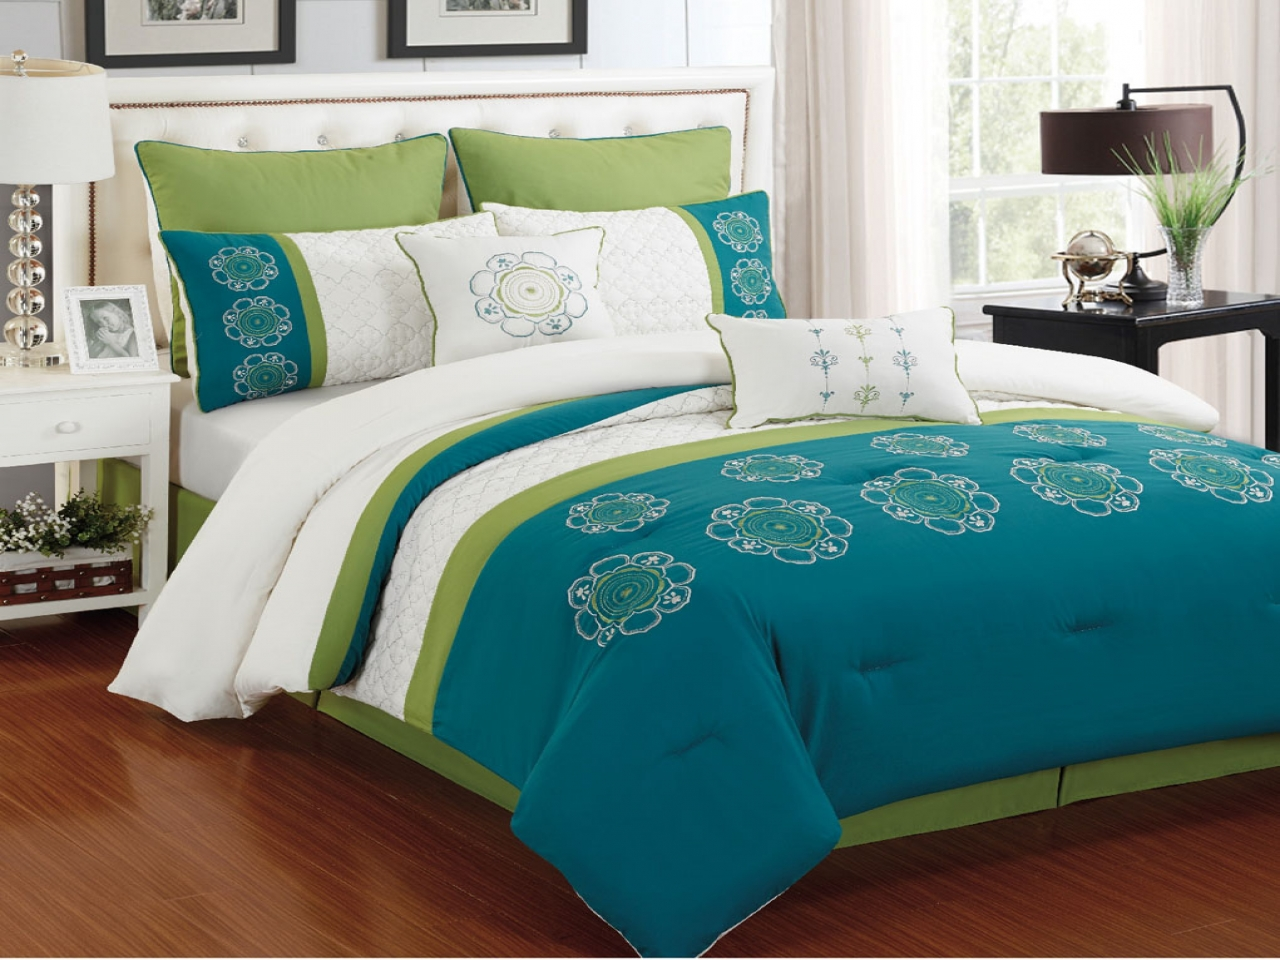 simply turqoise bedding turquoise sheets queen turquoise bedding